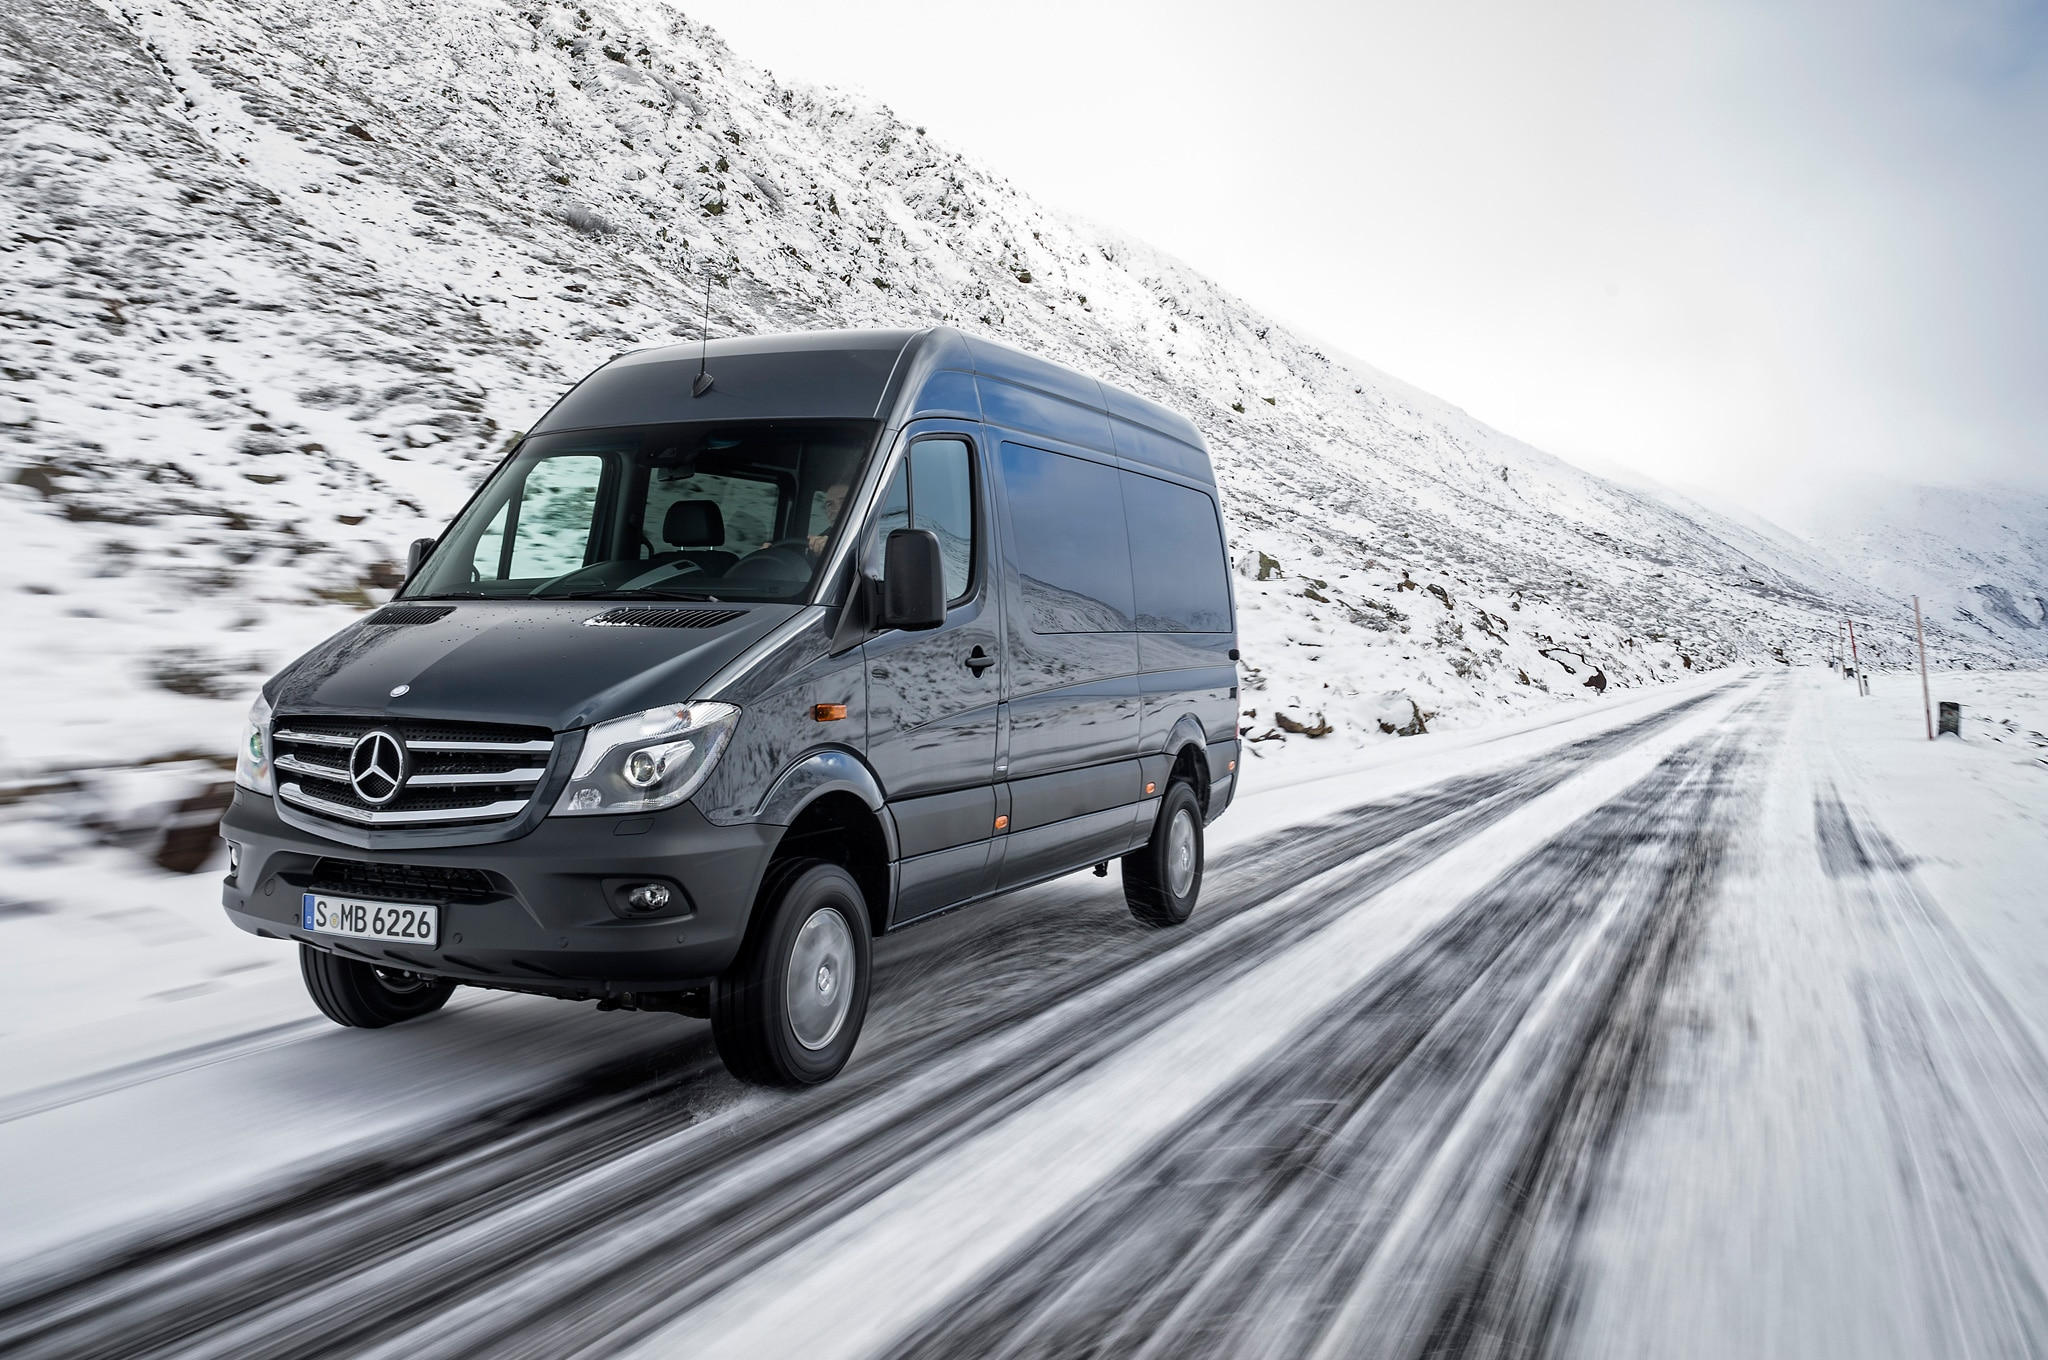 2015 mercedes benz sprinter 4x4 confirmed for u s market automobile magazine. Black Bedroom Furniture Sets. Home Design Ideas